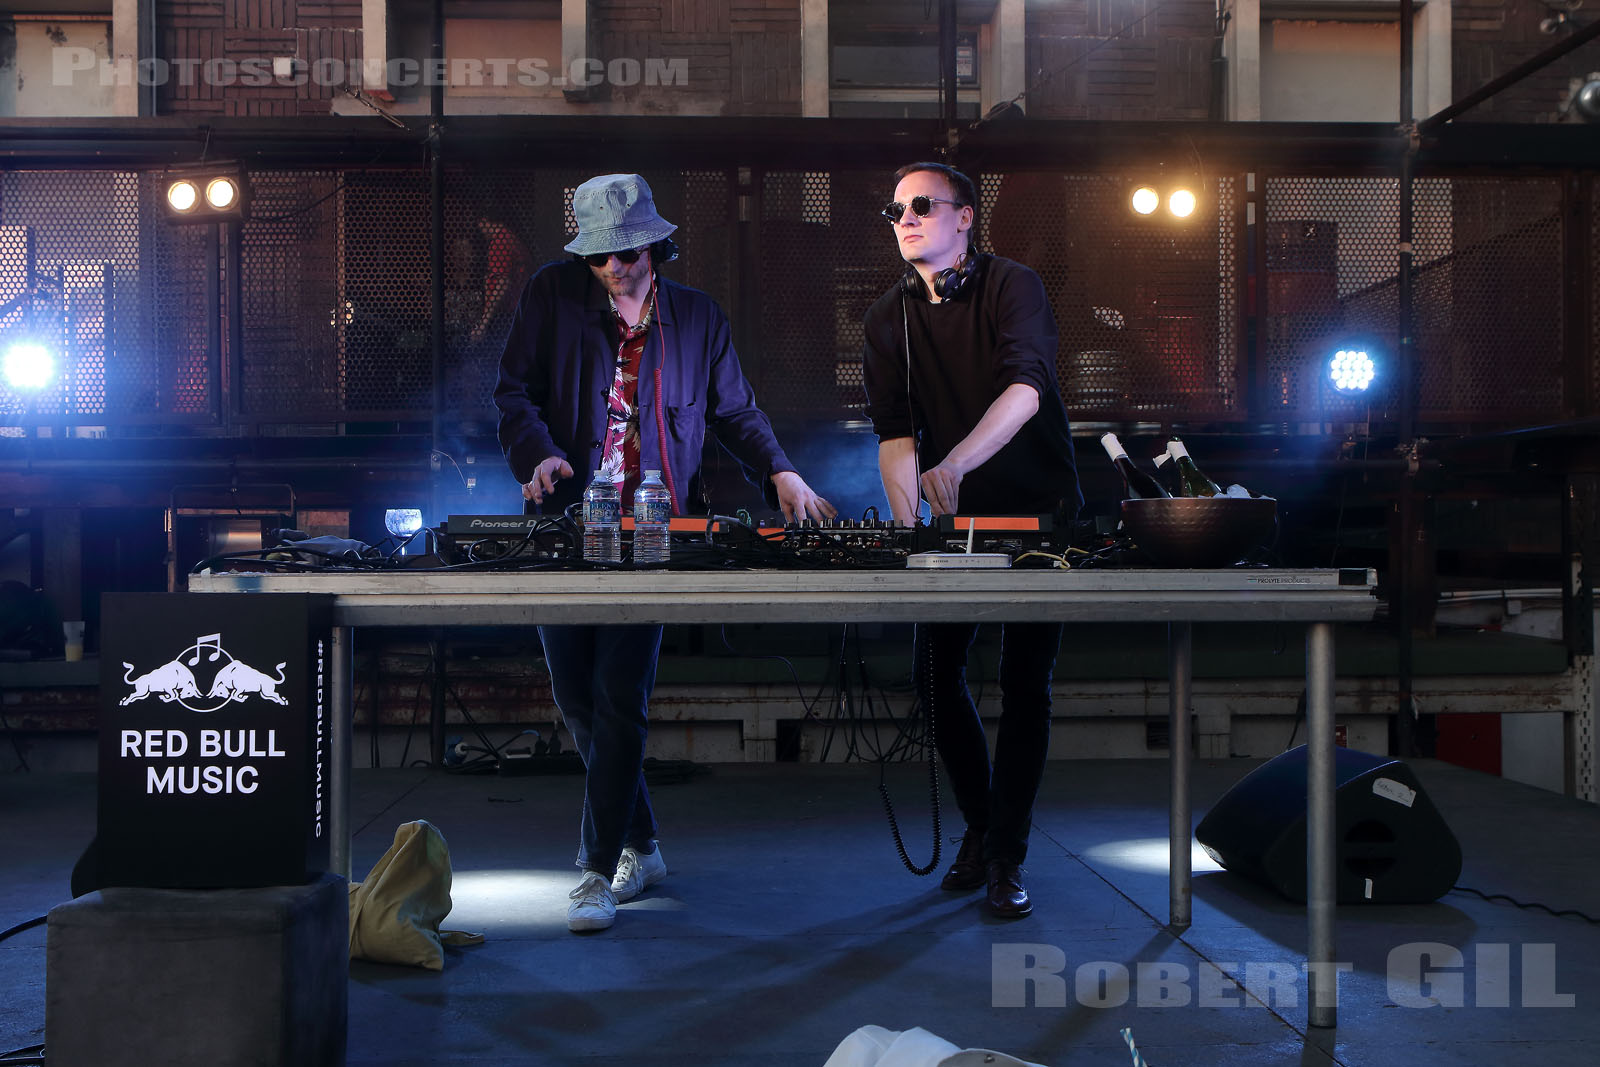 DJ BARNT AND SUPERPITCHER - 2018-05-20 - PARIS - La Station - Gare des Mines